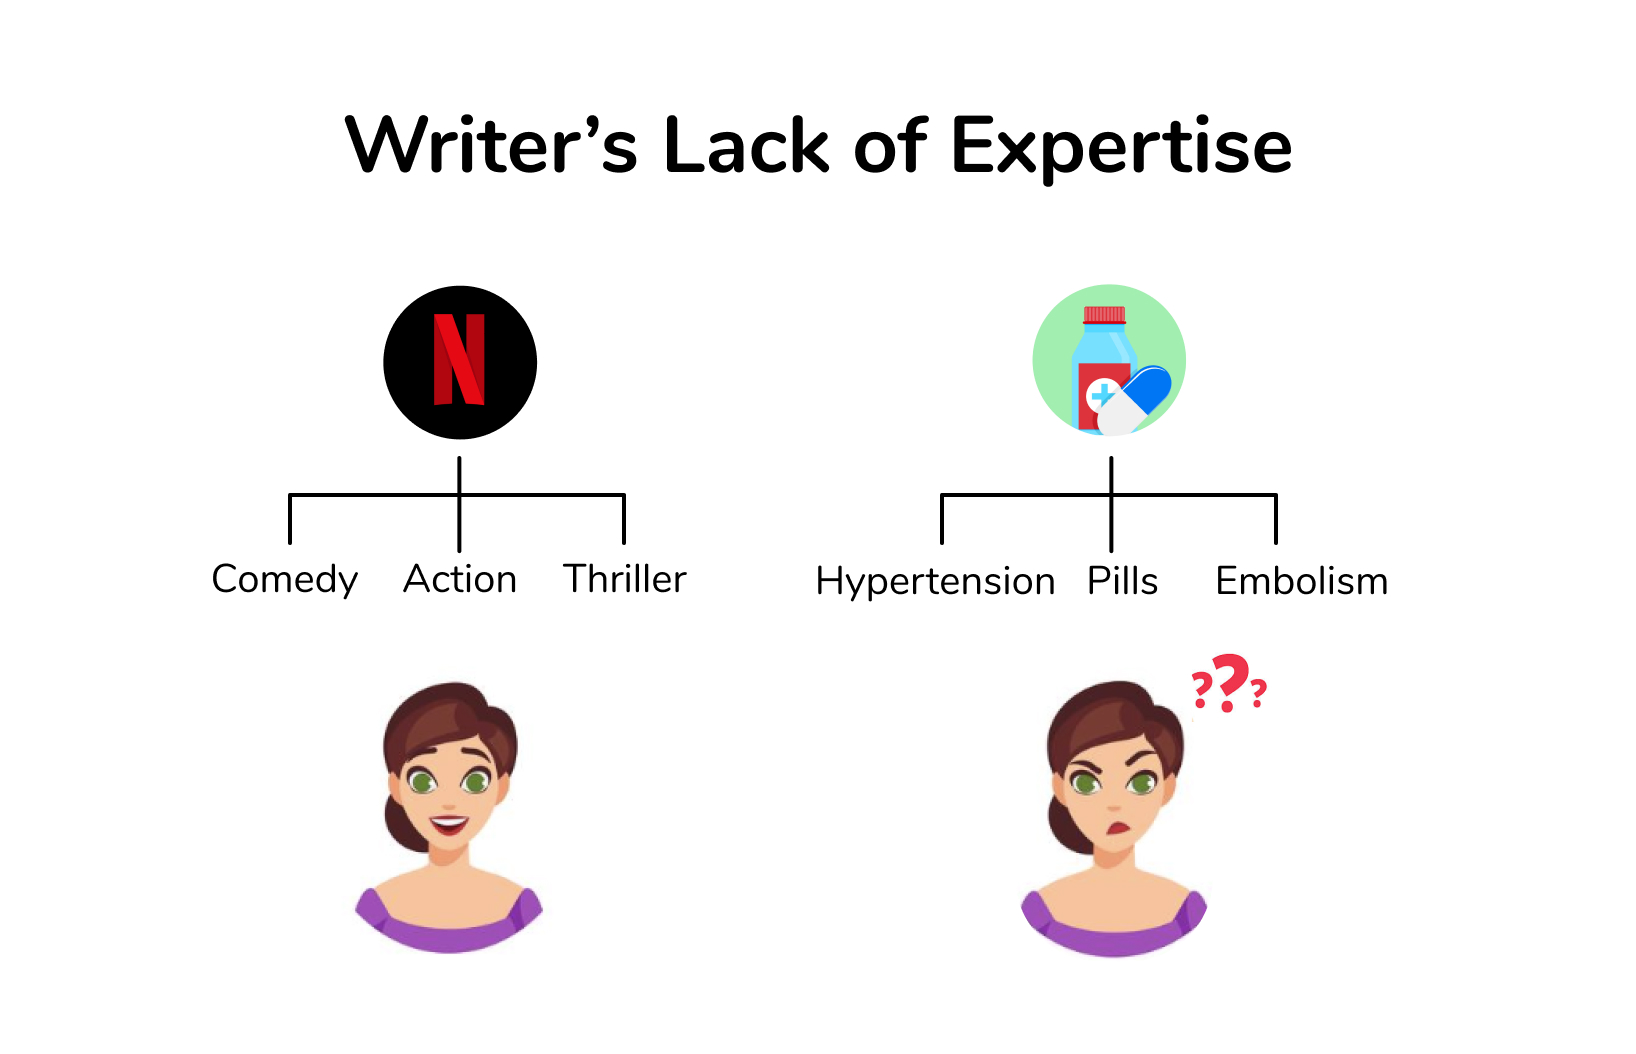 A happy writer when writing about her expertise in t.v. next to an unhappy writer when writing outside of her expertise.